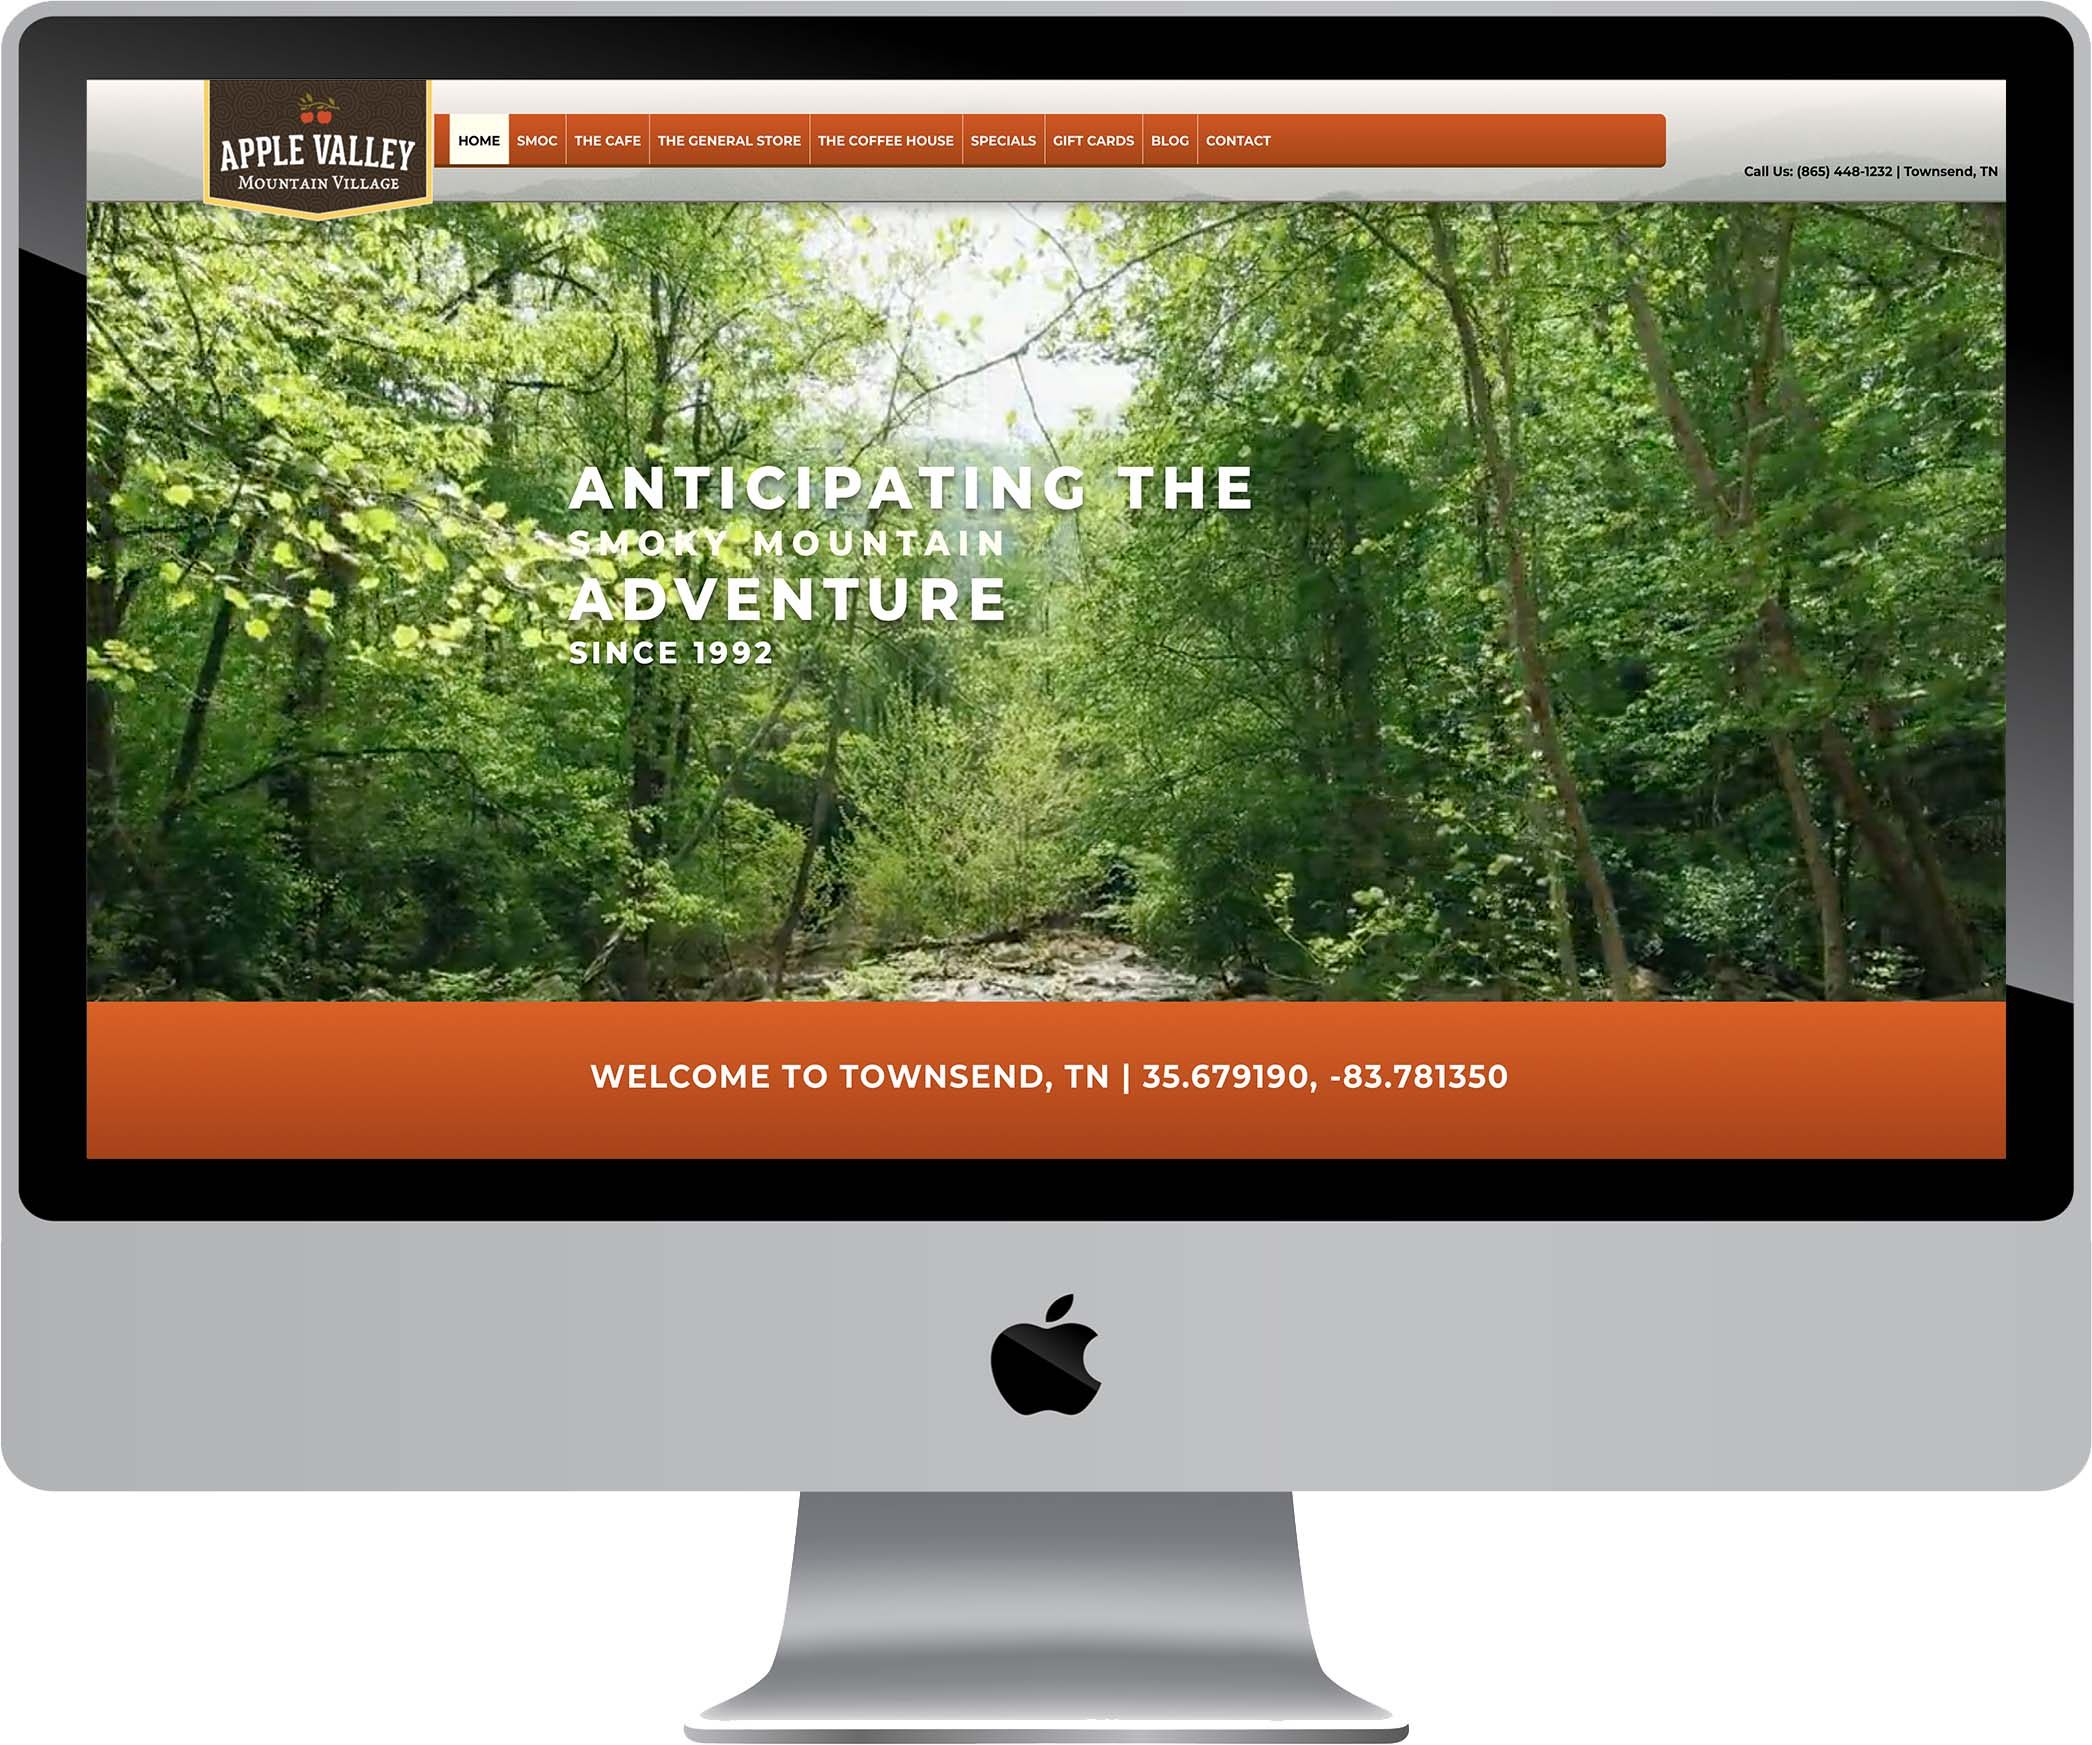 Apple Valley Mountain Village Website Design